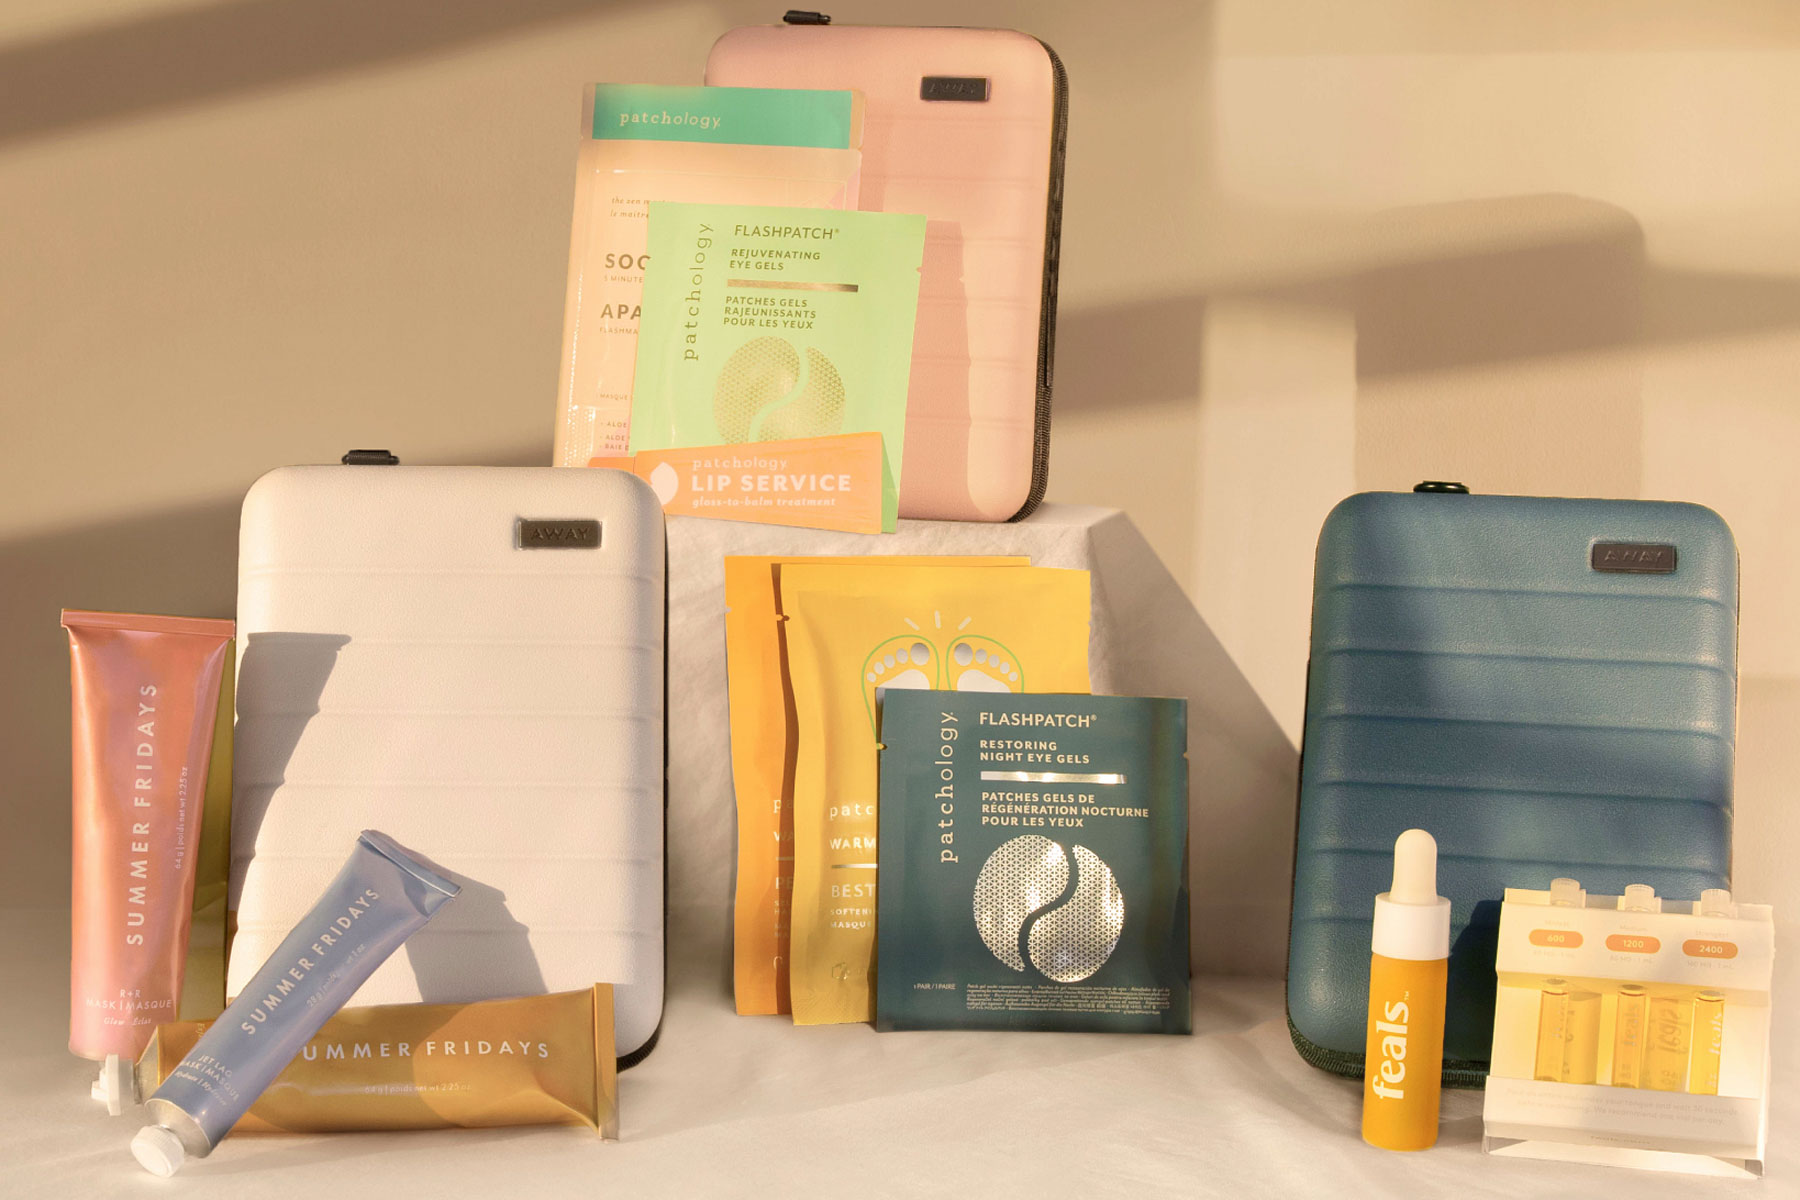 Away mini suitcases and skincare products